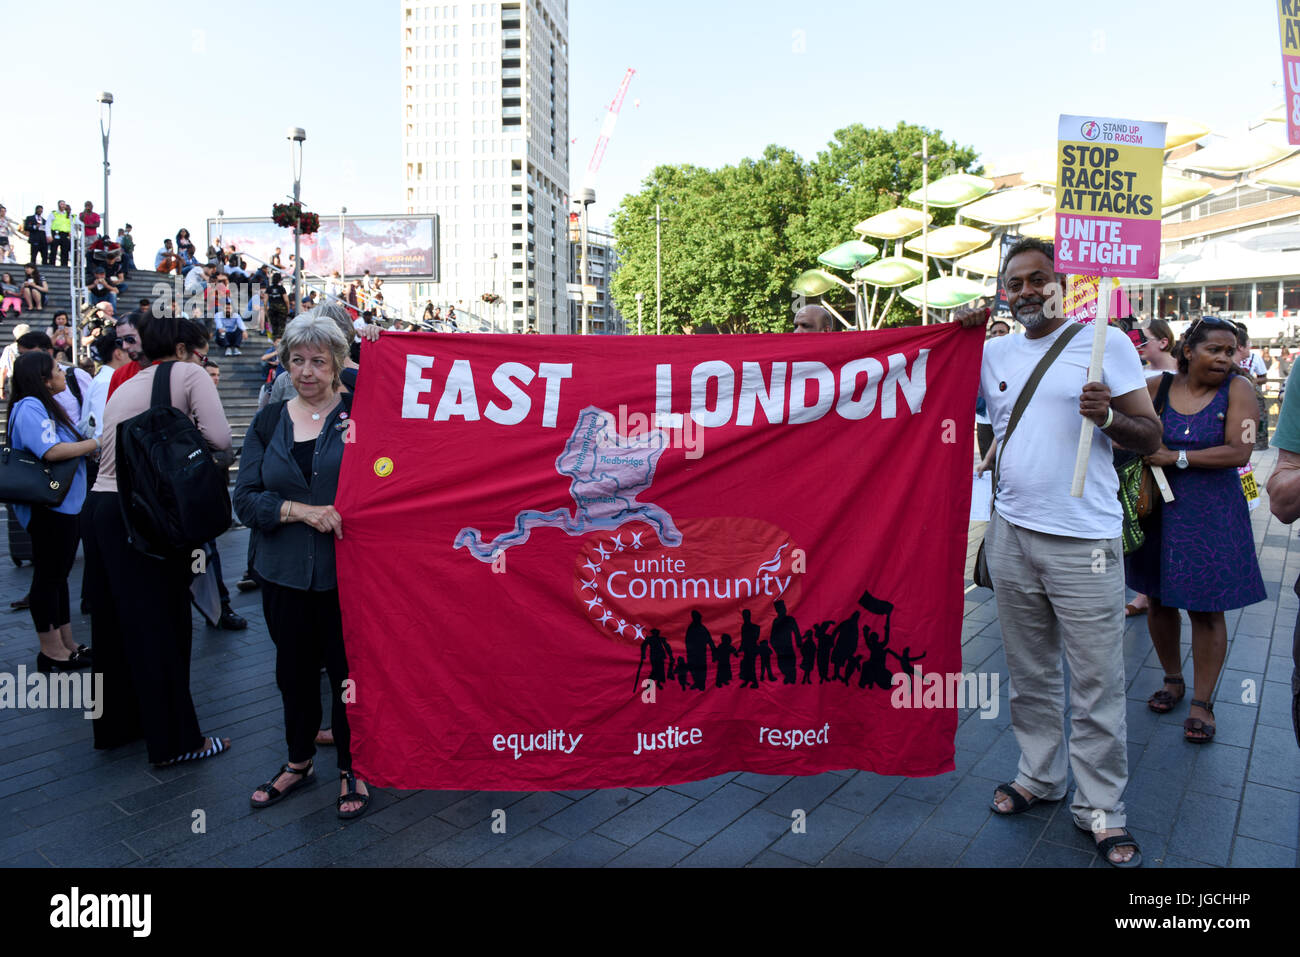 London, UK. 05th JUL 2017. 'STOP ACID ATTACKS' emergency protest outside the Stratford station in East London. - Stock Image